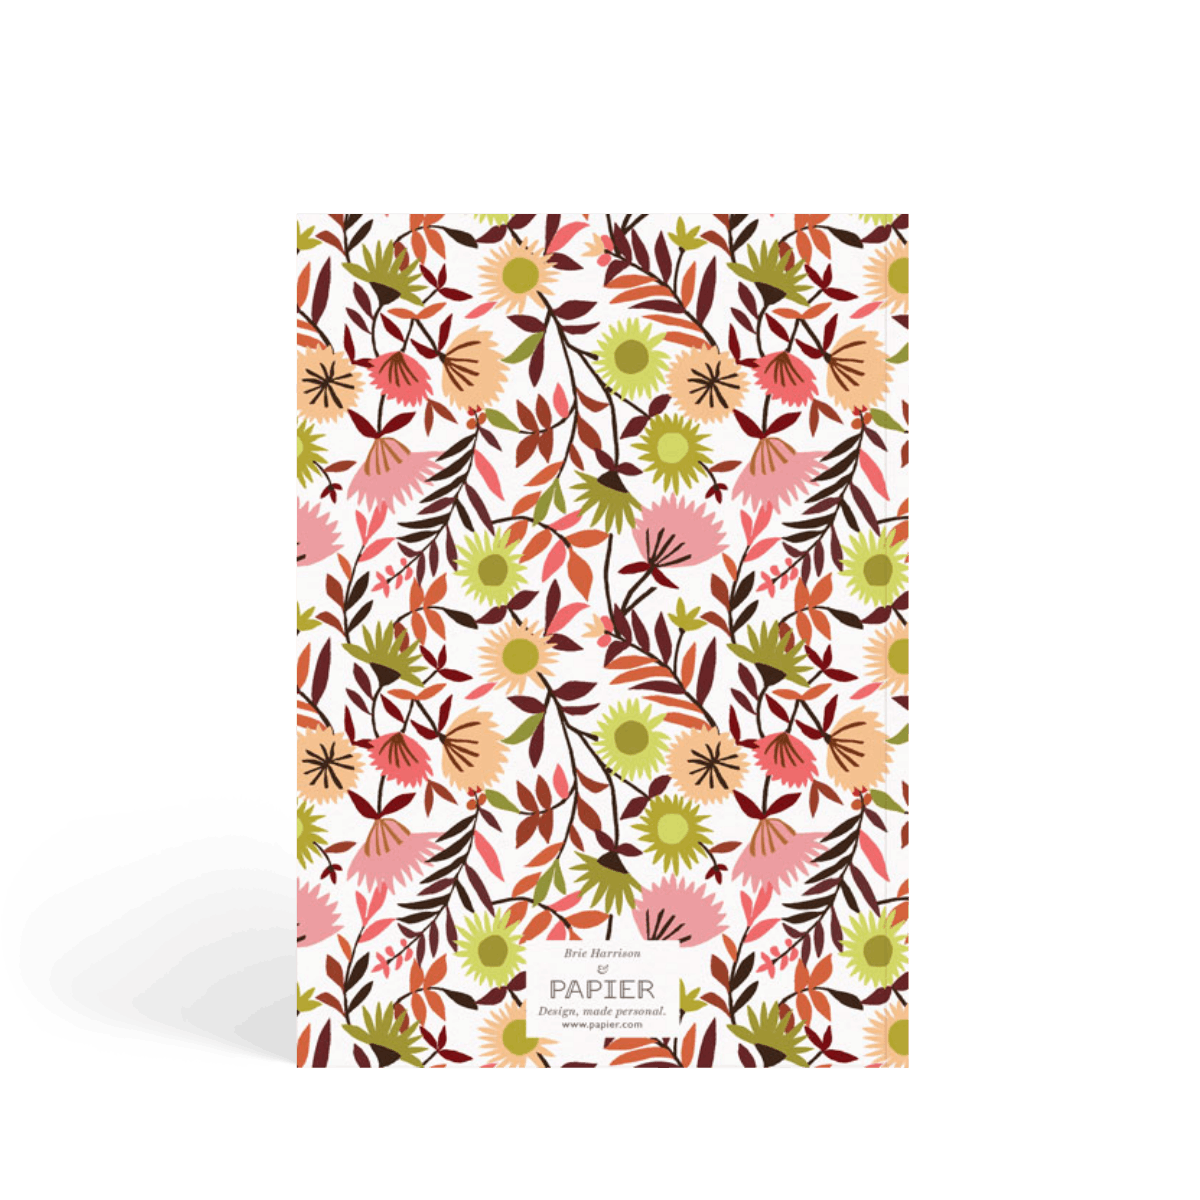 Https%3a%2f%2fwww.papier.com%2fproduct image%2f15884%2f5%2fmeadow flowers 4199 back 1484155109.png?ixlib=rb 1.1